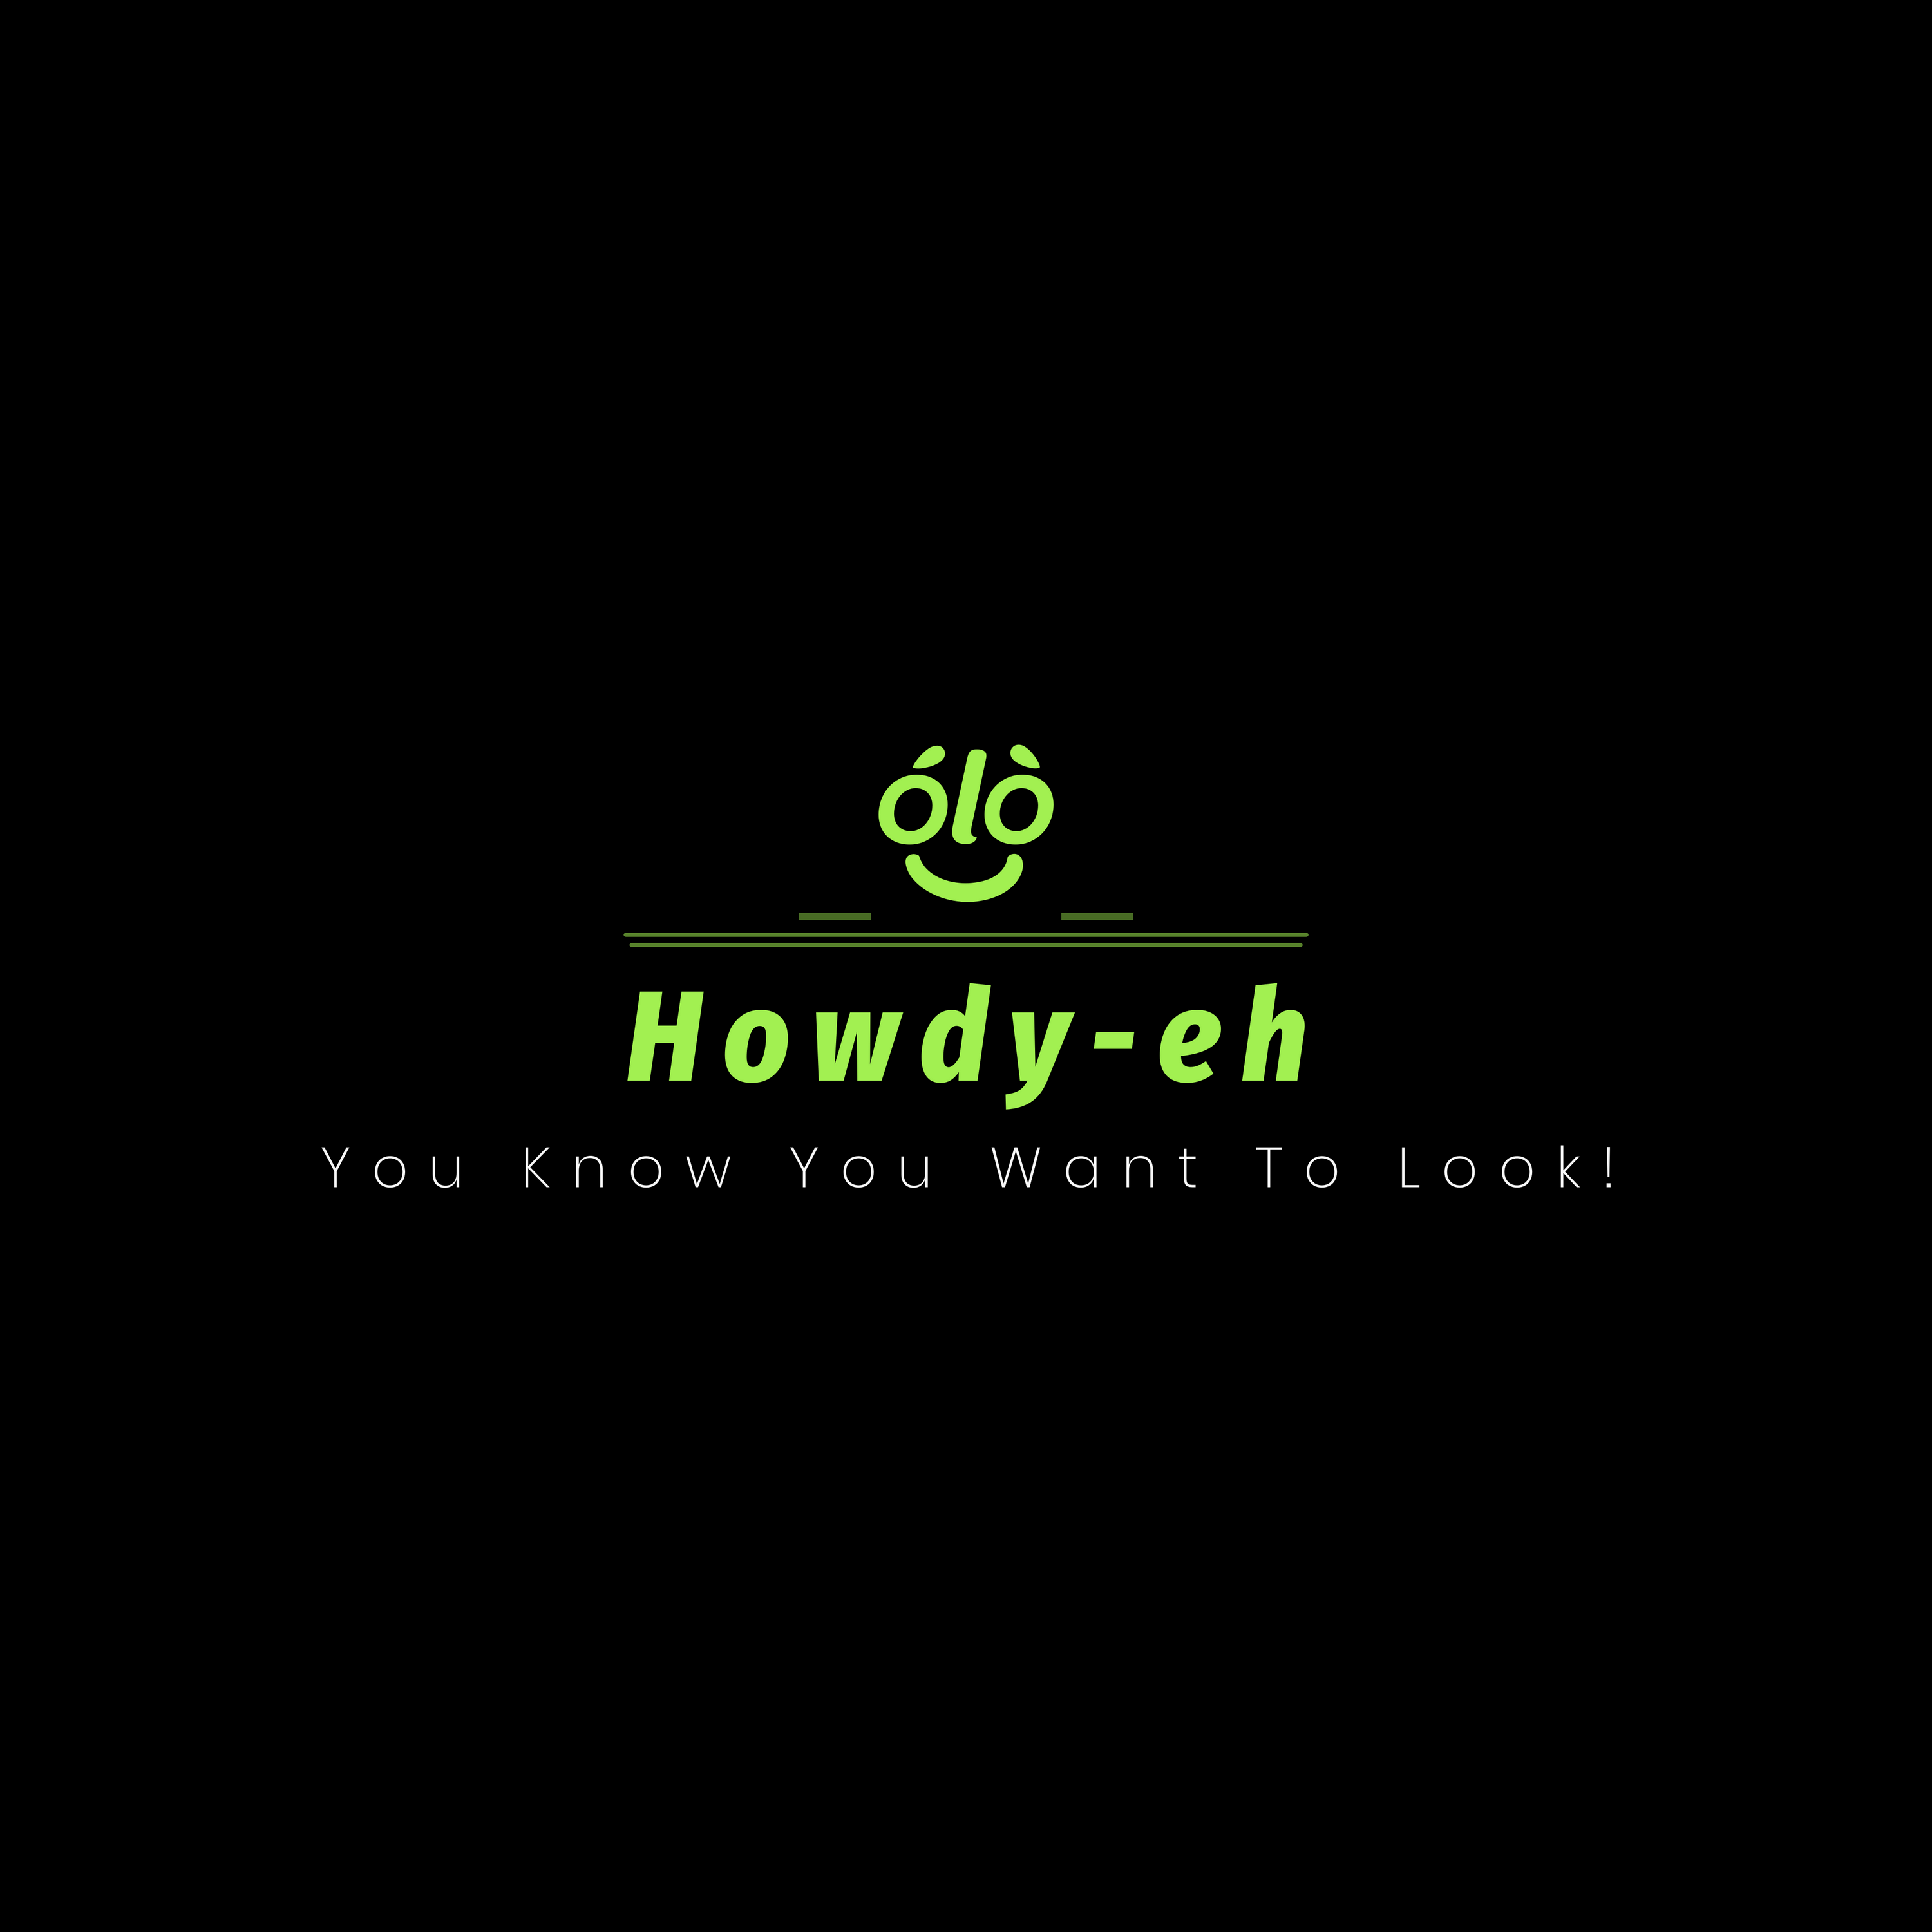 Howdy-eh